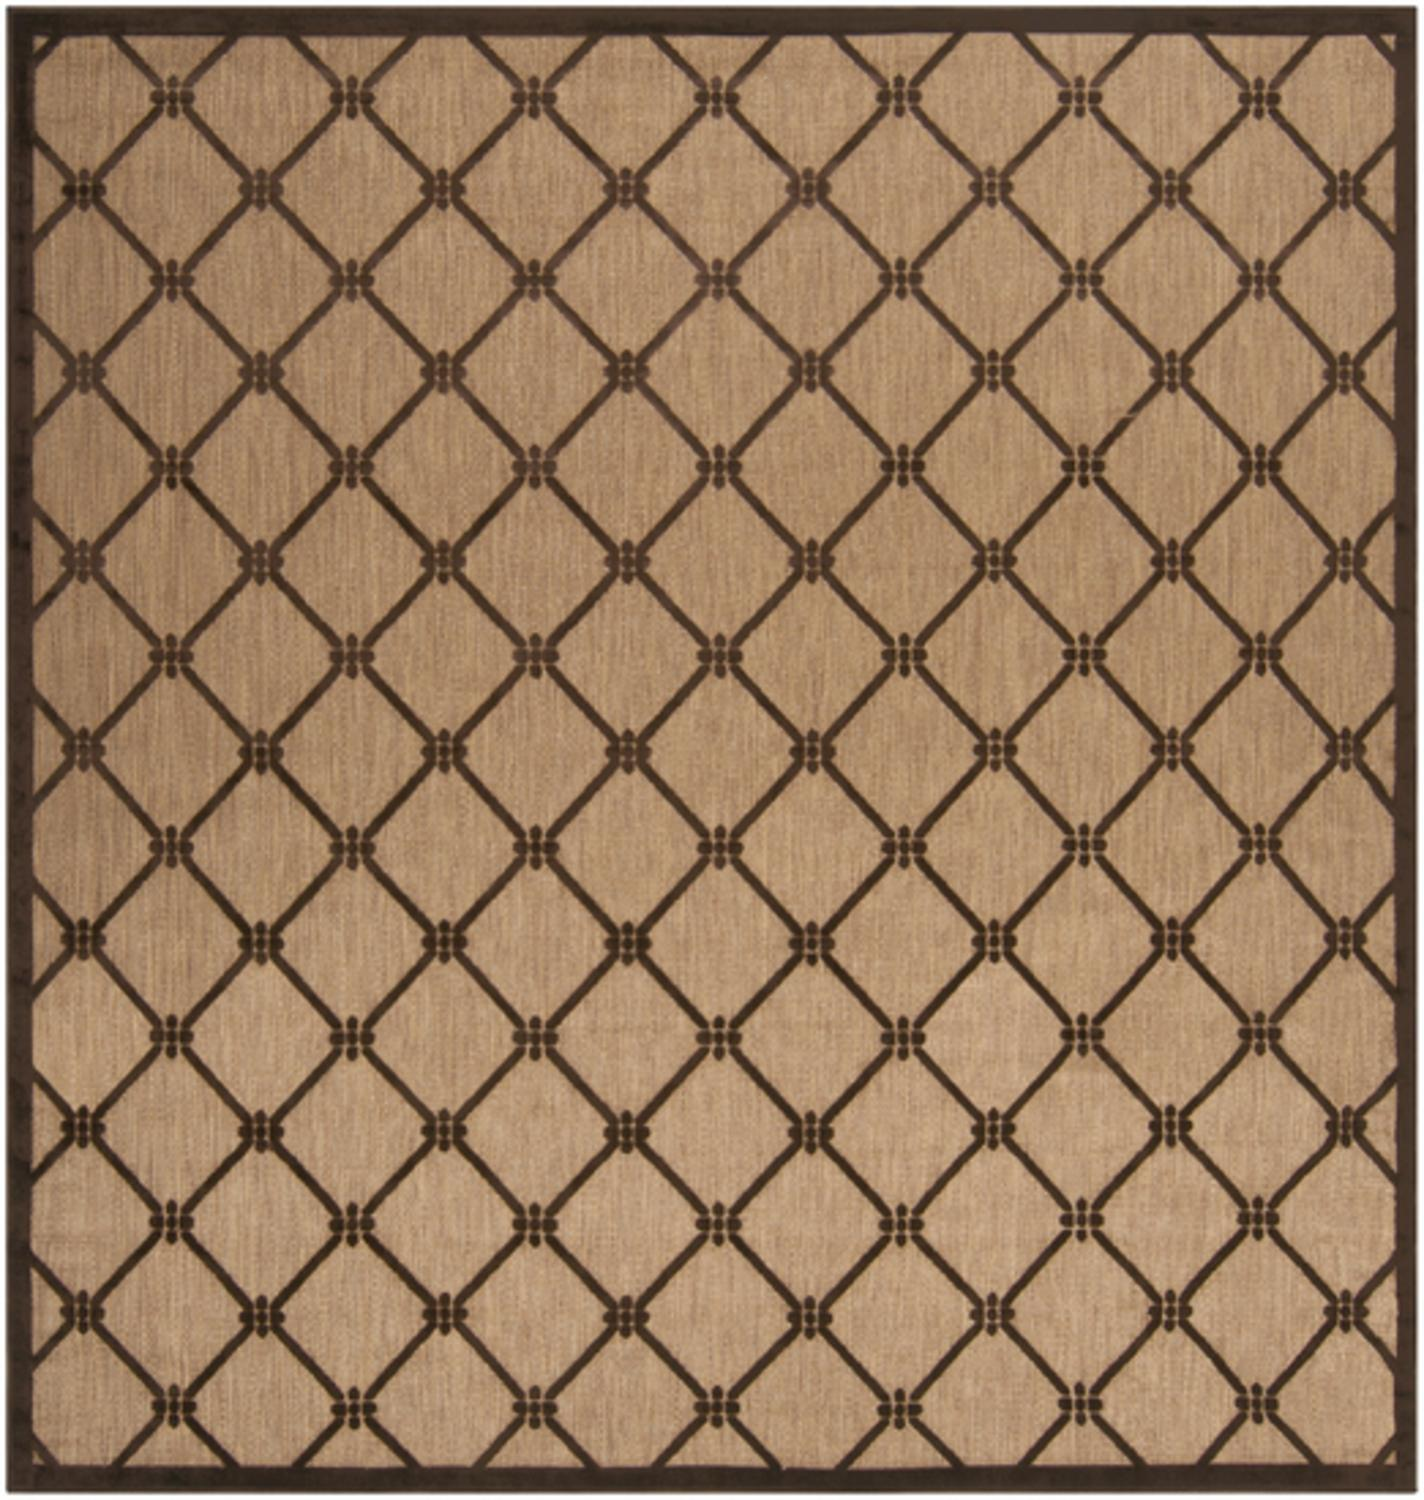 7.5' x 7.5' Diamond Palisade Dark Chocolate & Tan Square Outdoor Area Throw Rug